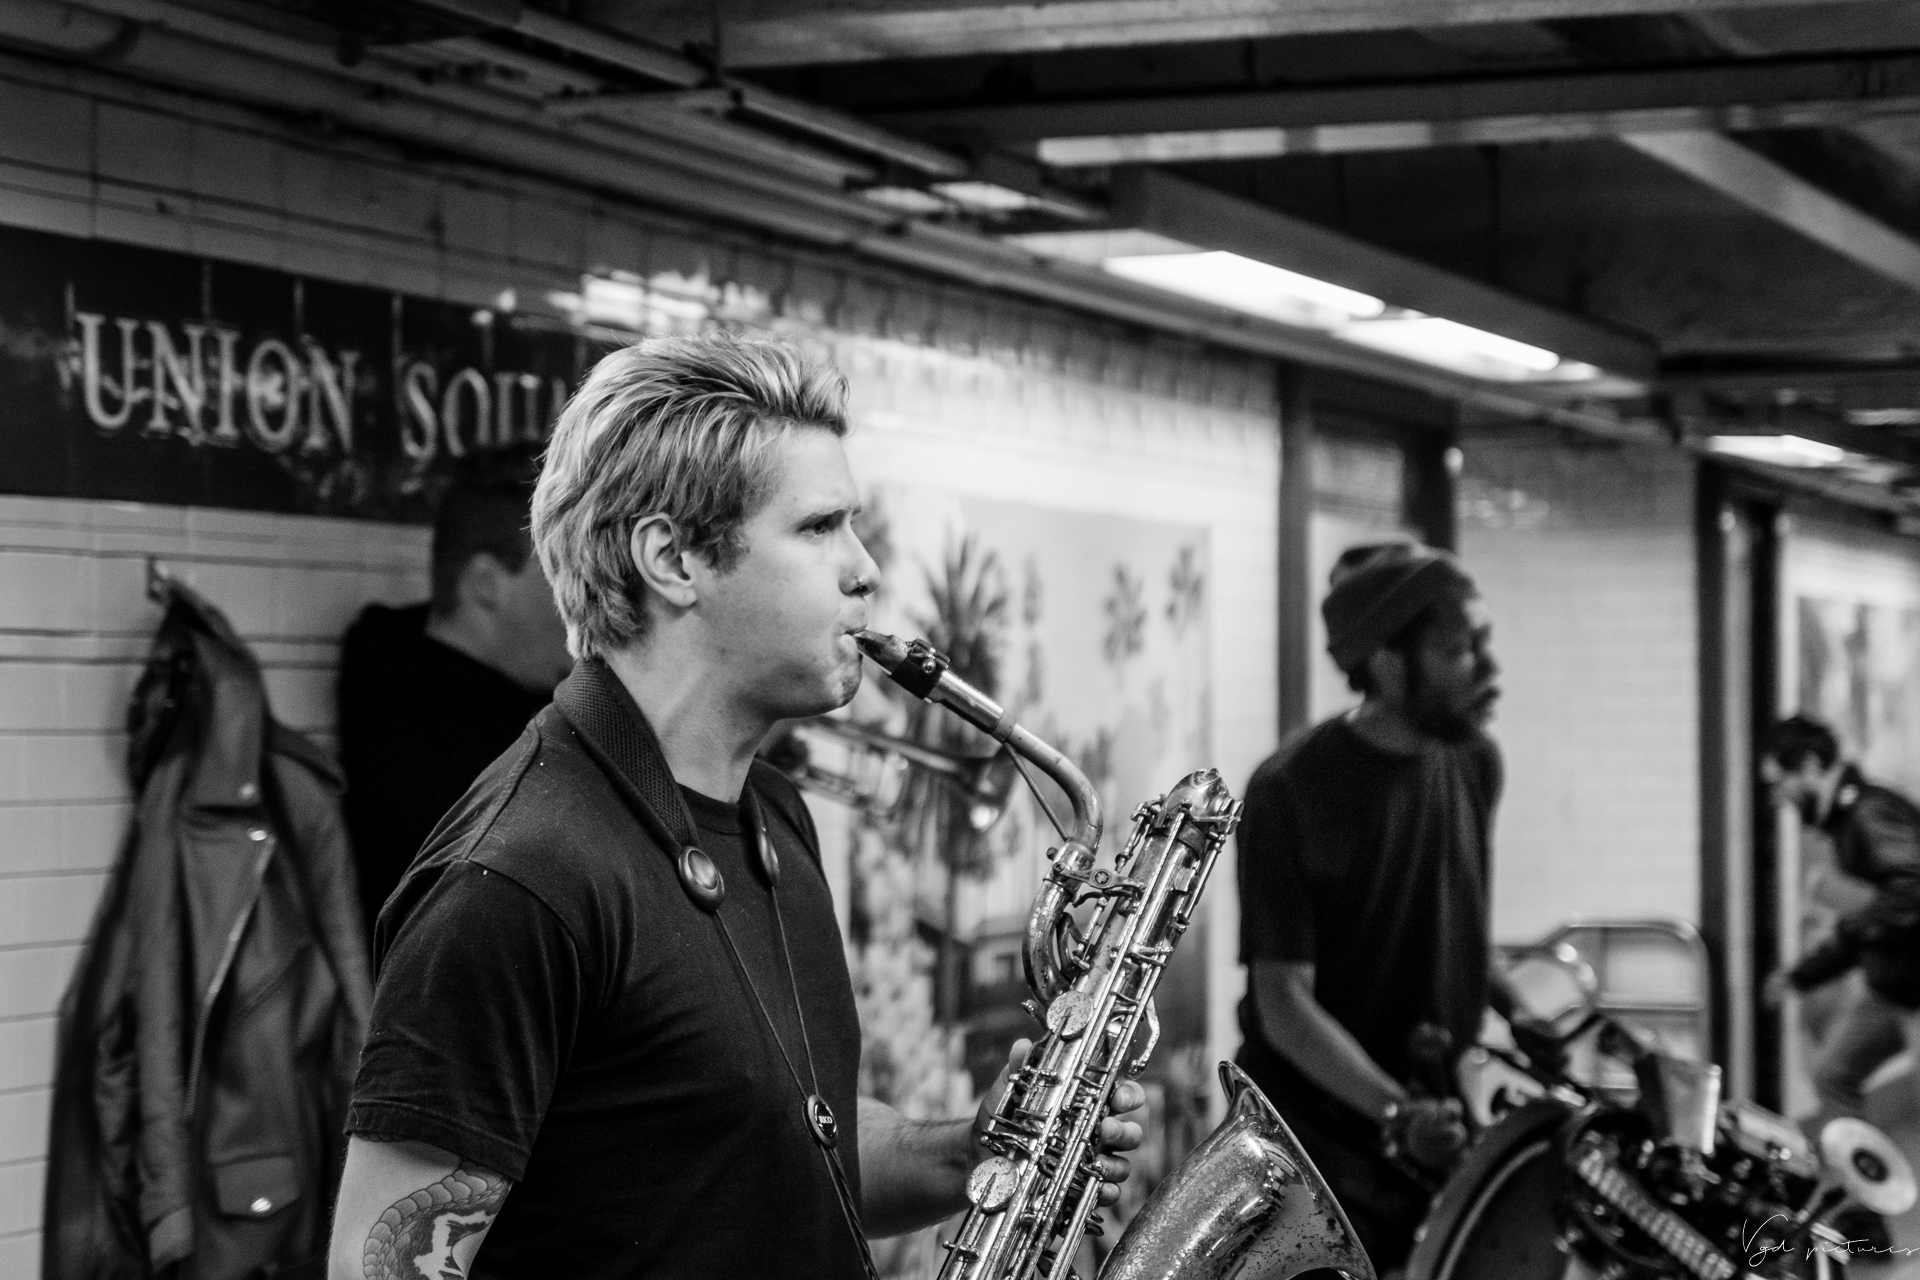 Too Many Zooz At Union Square